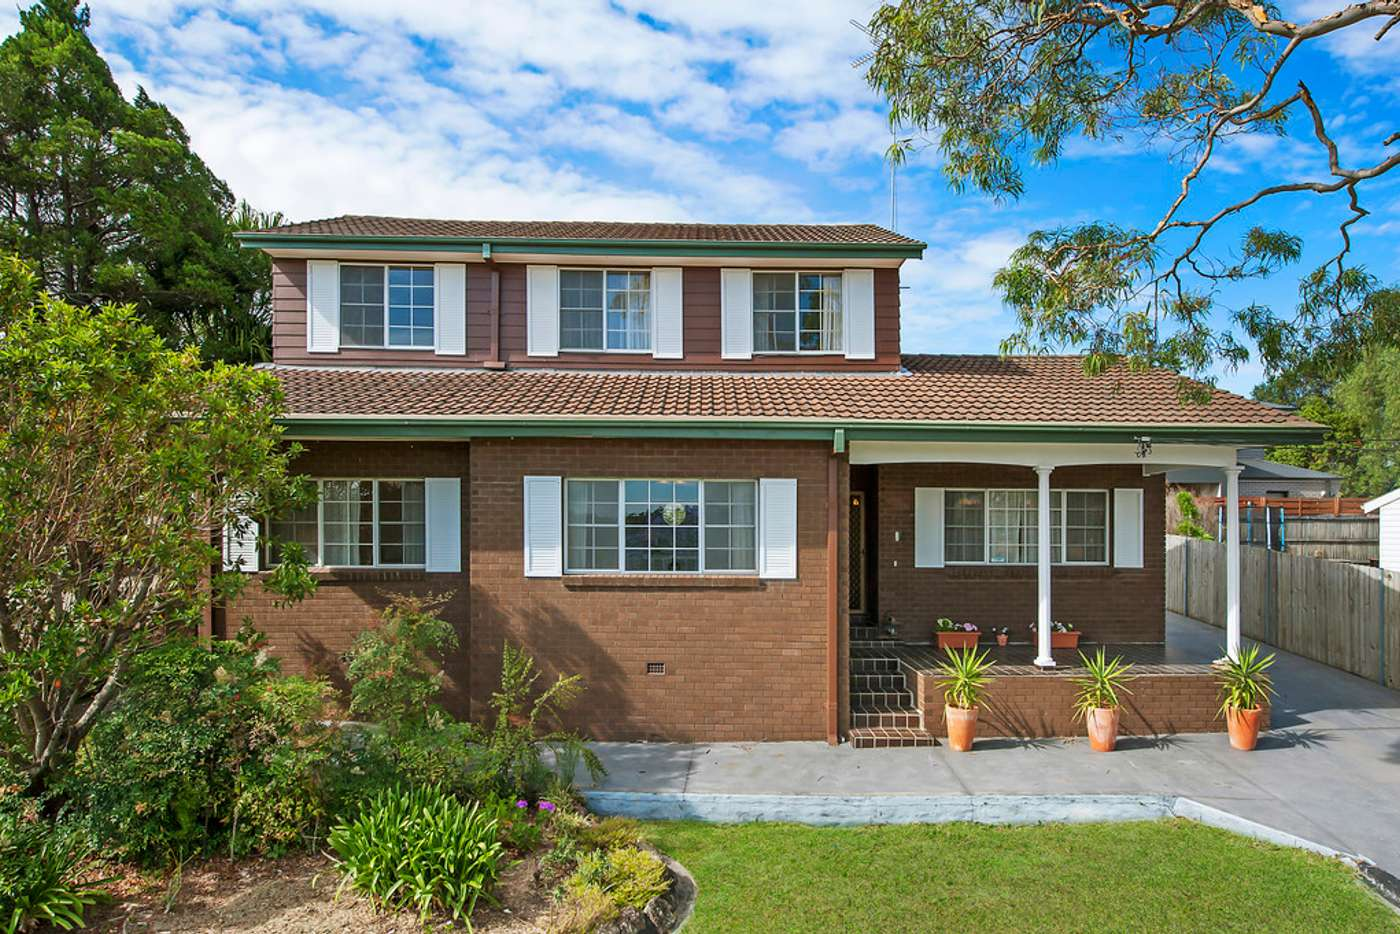 Main view of Homely house listing, 9 Glenview Road, Mount Kuring-gai NSW 2080